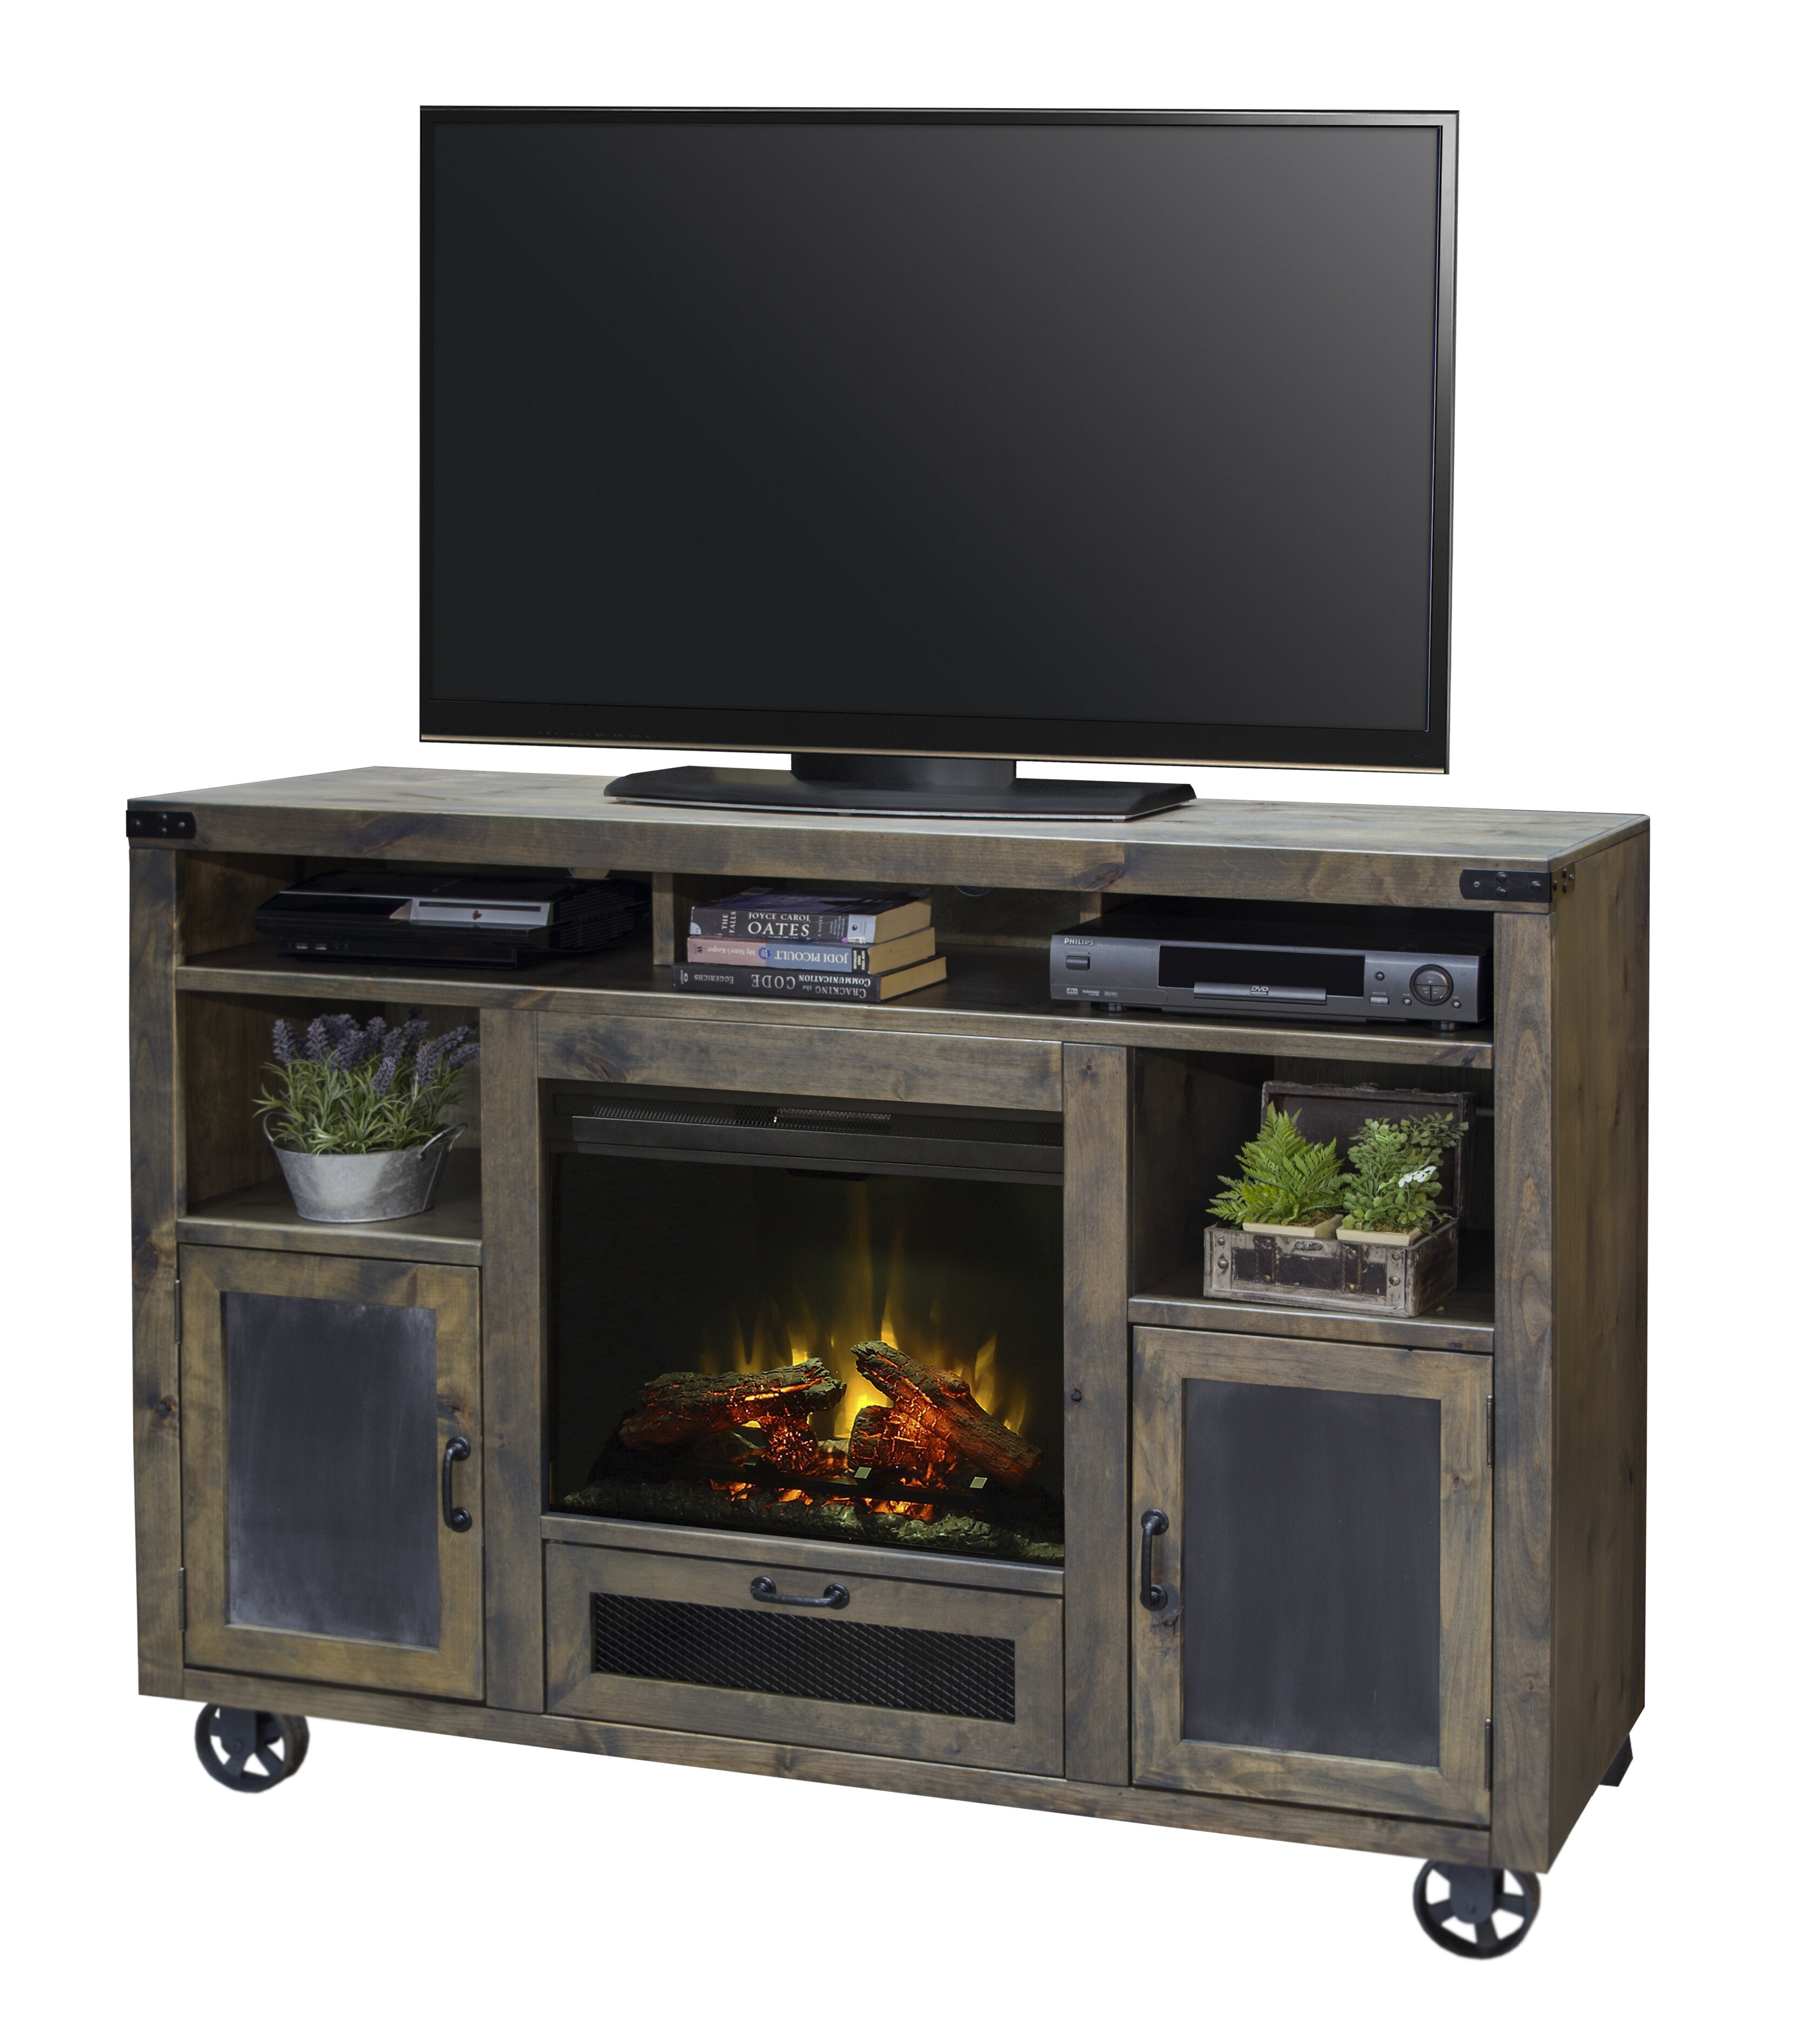 Laurel Foundry Modern Farmhouse Narbonne Tv Stand For Tvs Up To 60